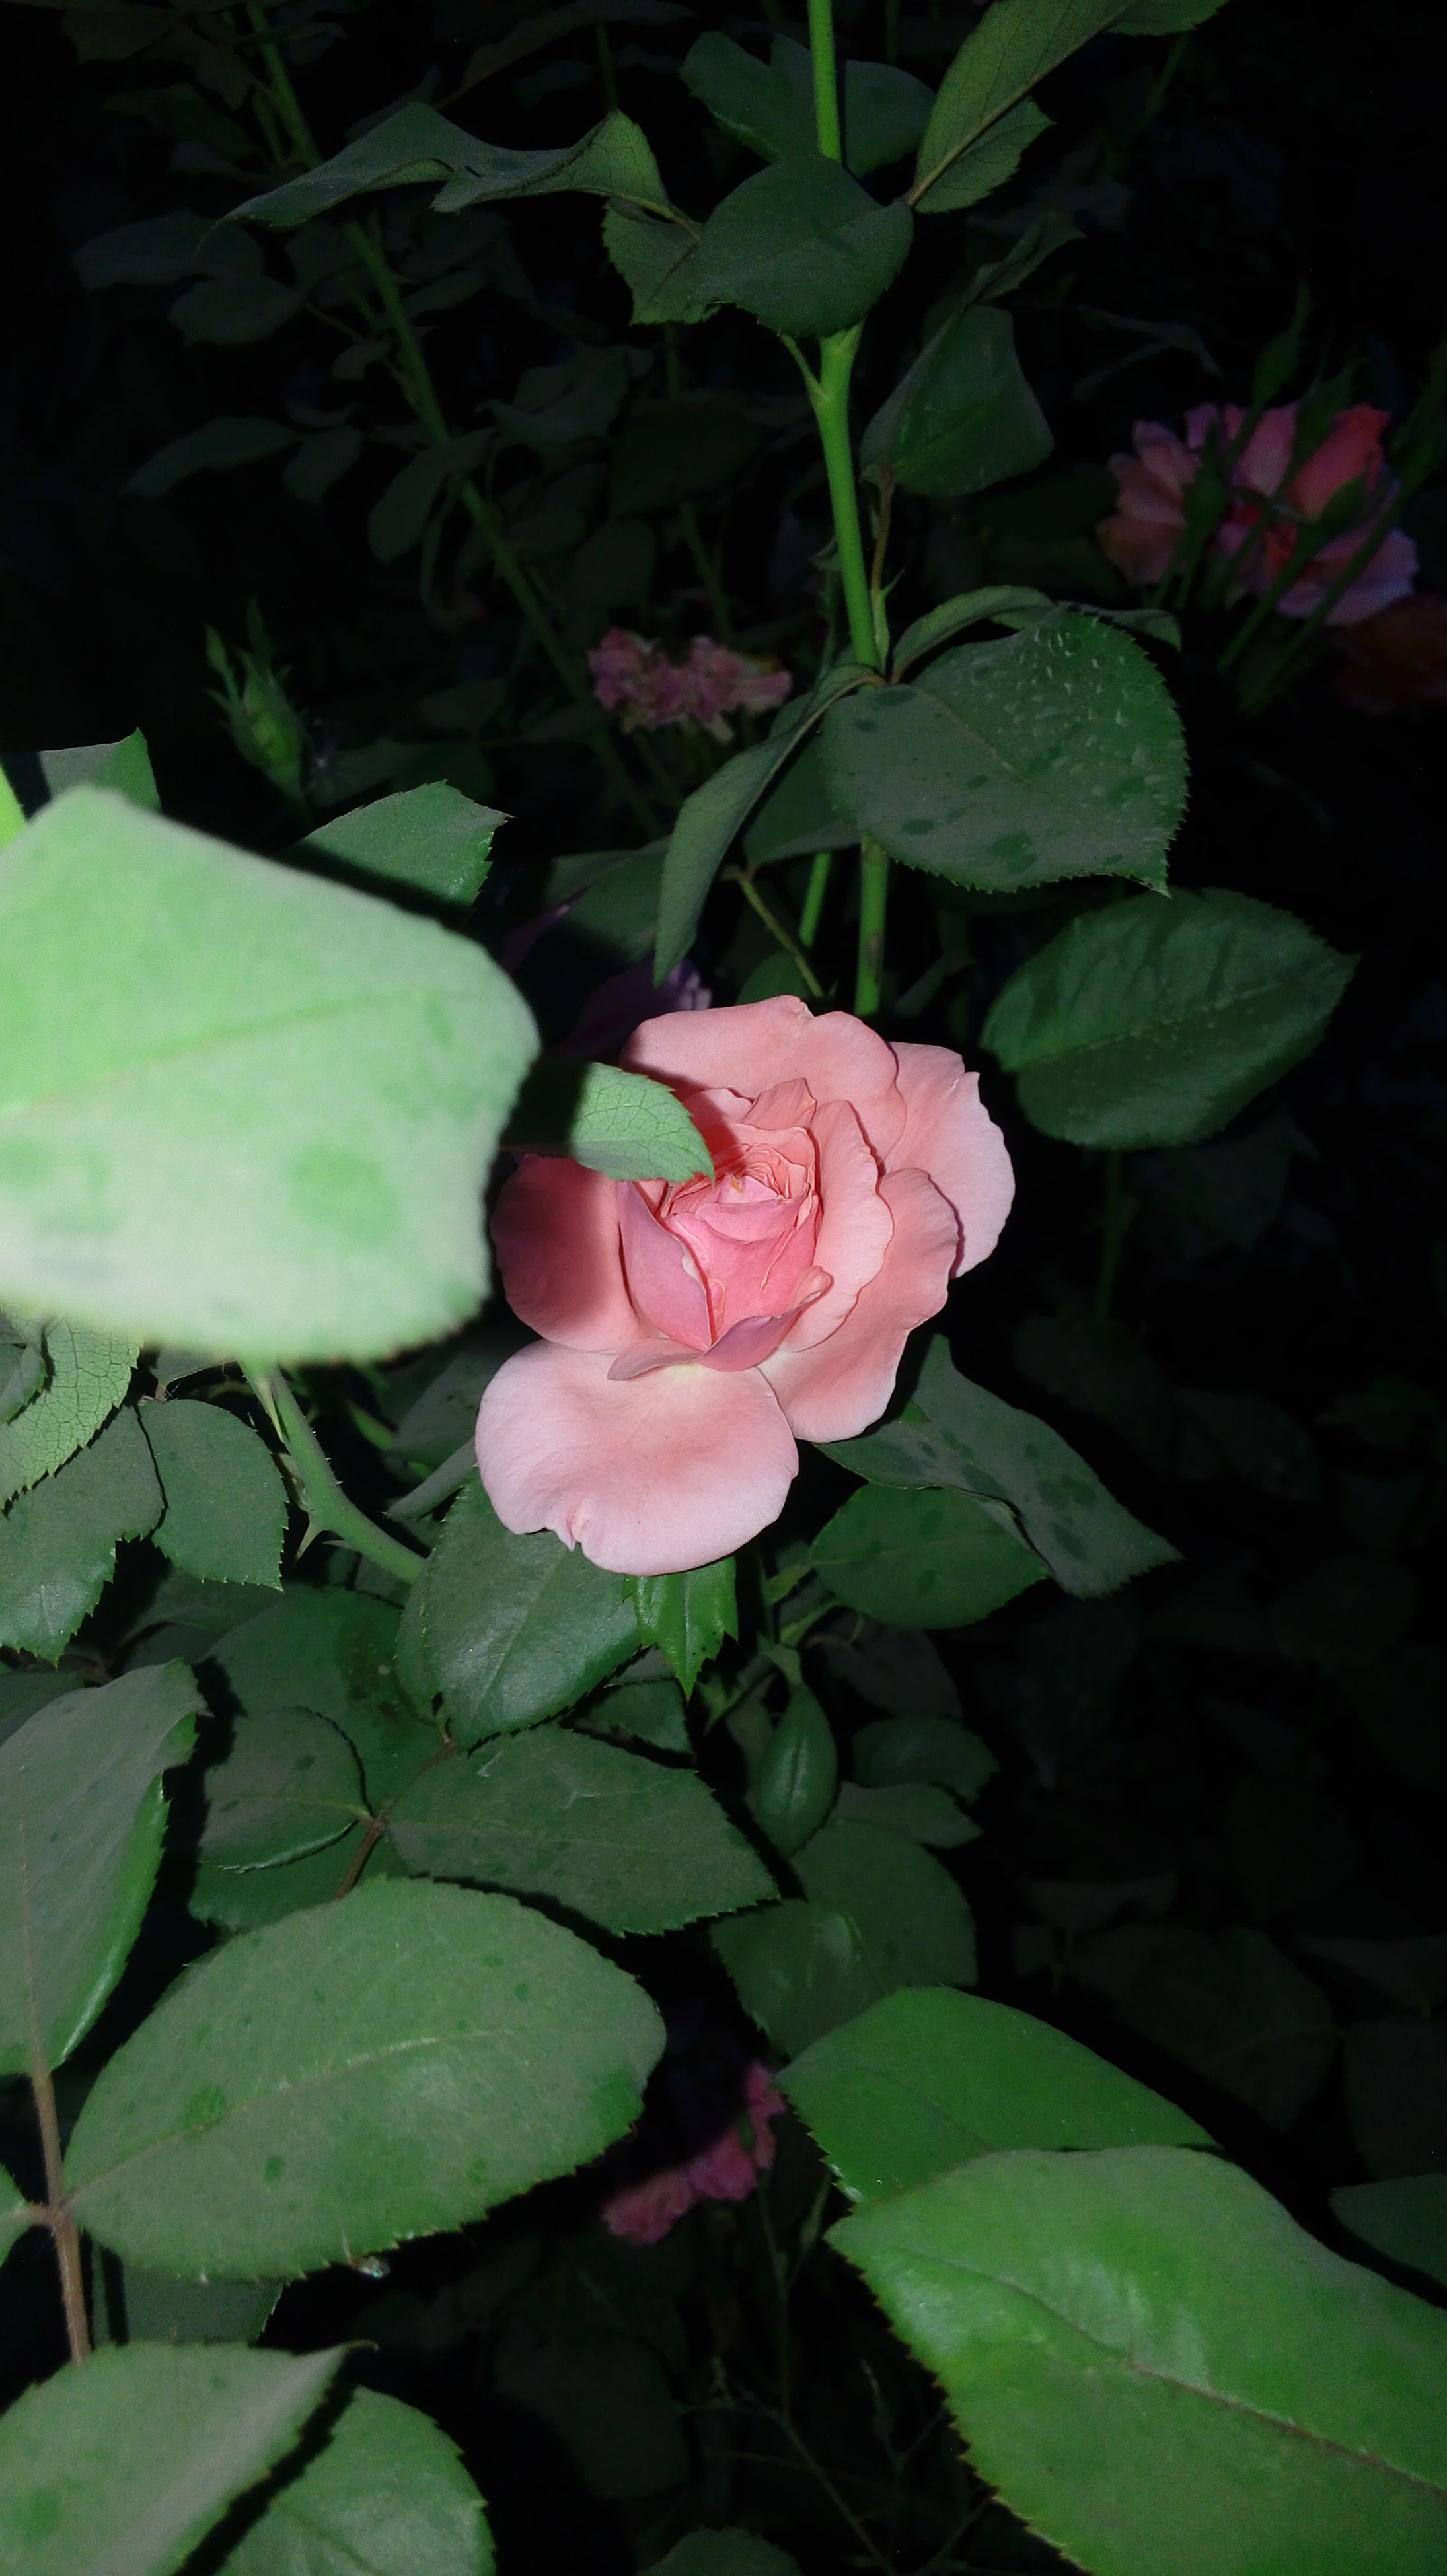 flower, petal, leaf, freshness, growth, fragility, flower head, beauty in nature, plant, nature, blooming, close-up, green color, pink color, in bloom, rose - flower, high angle view, park - man made space, single flower, blossom